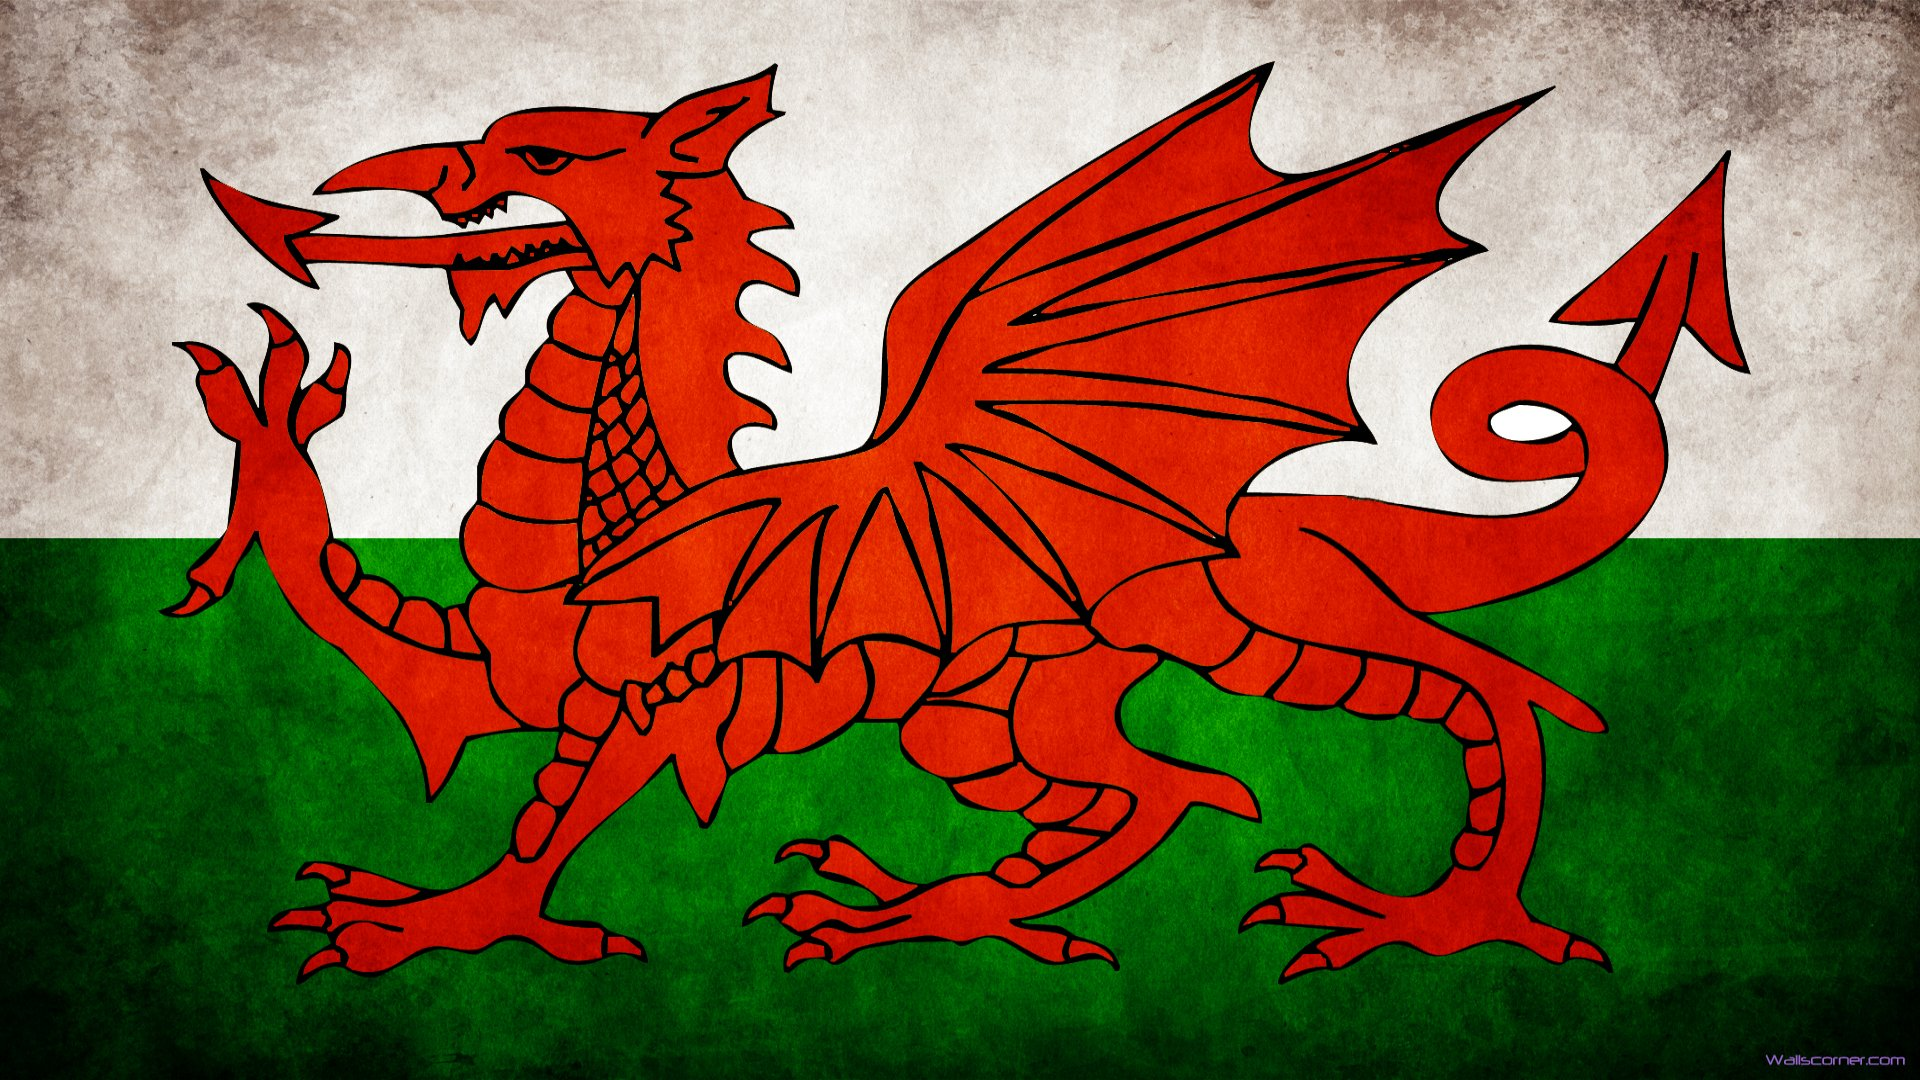 all other resolutions of wales beauty wales hd wallpaper wallpaper hd 1920x1080